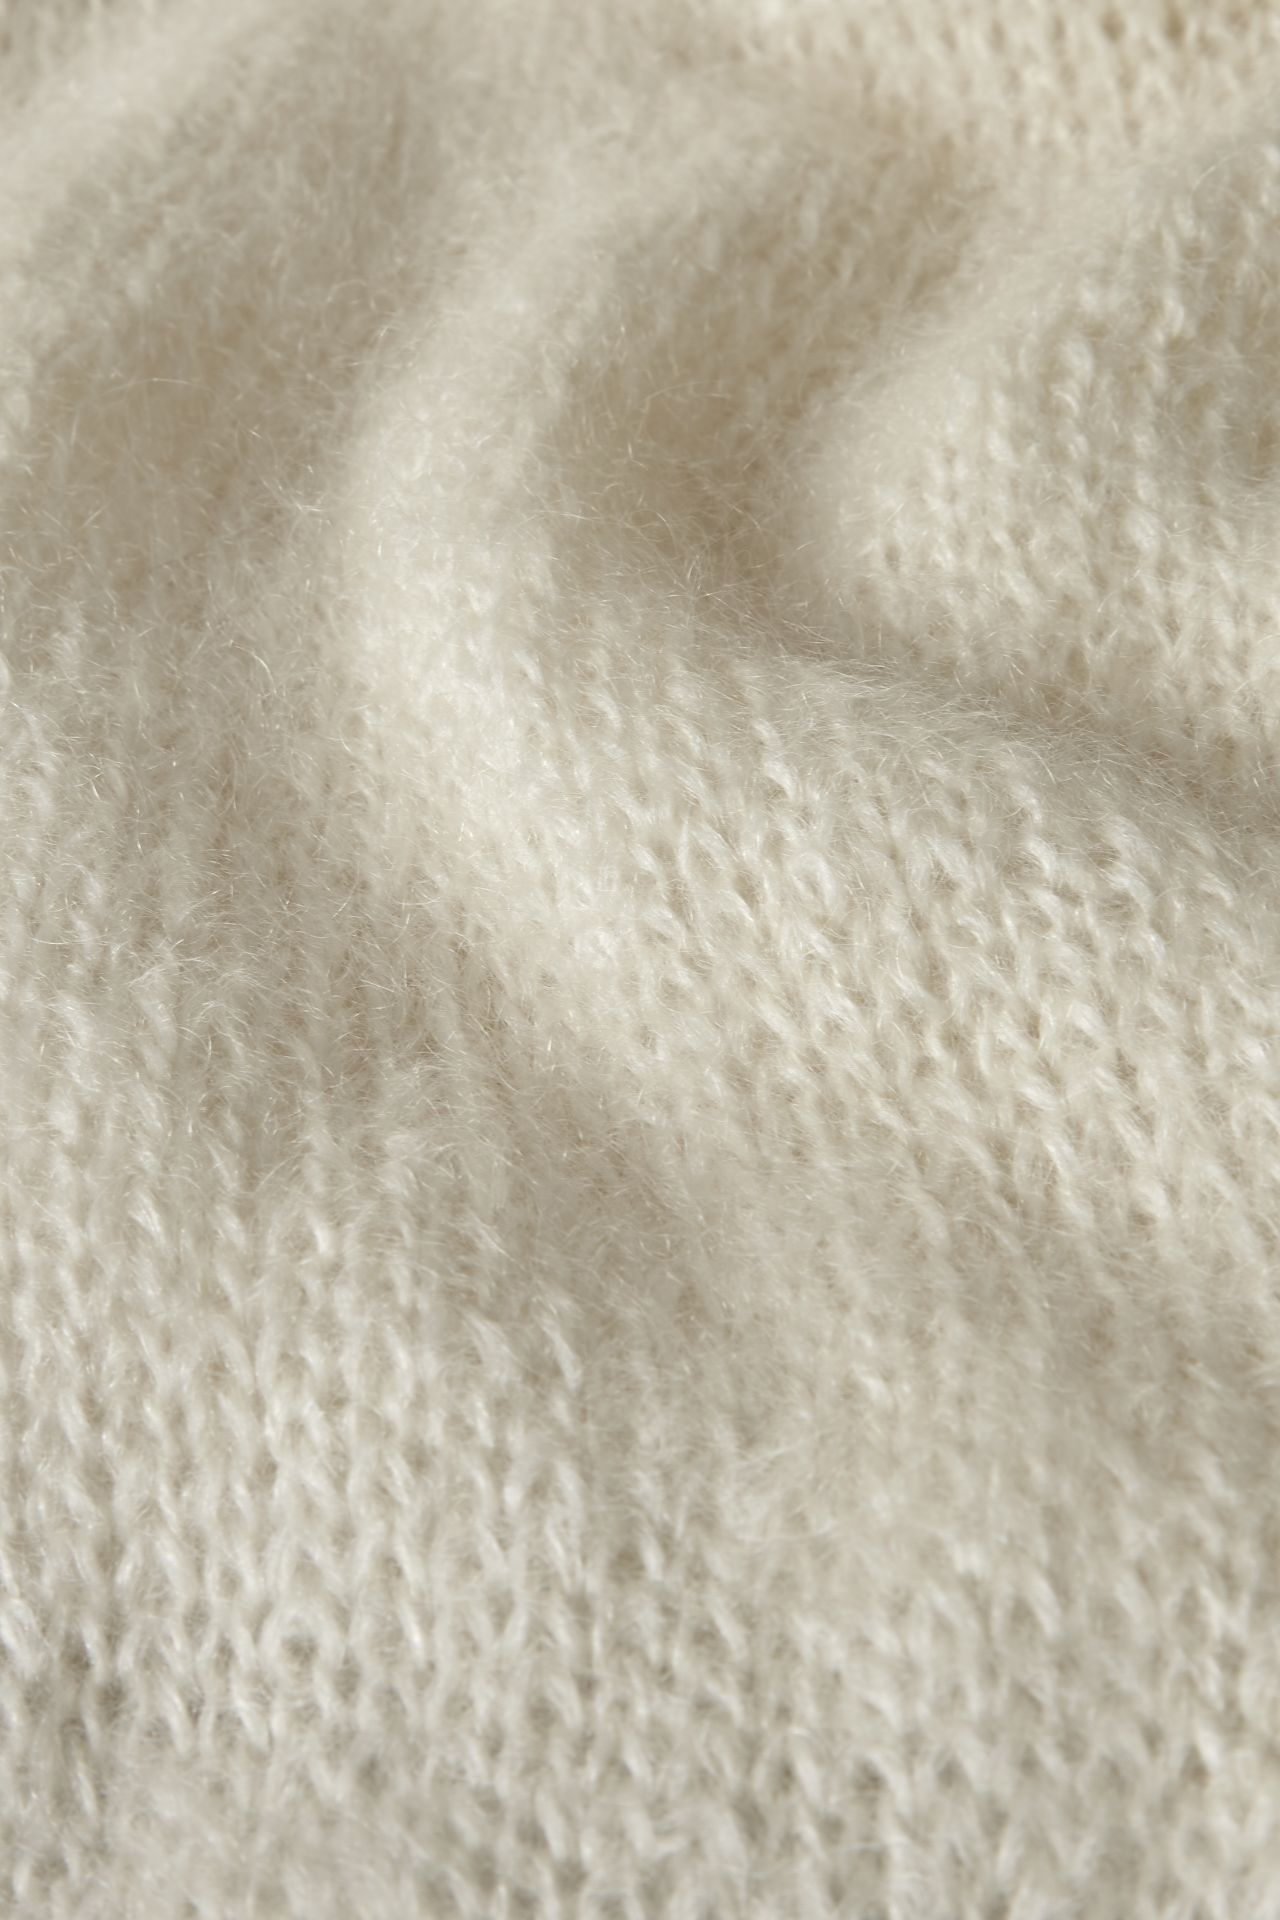 Mohair off-white yarn detail knit.